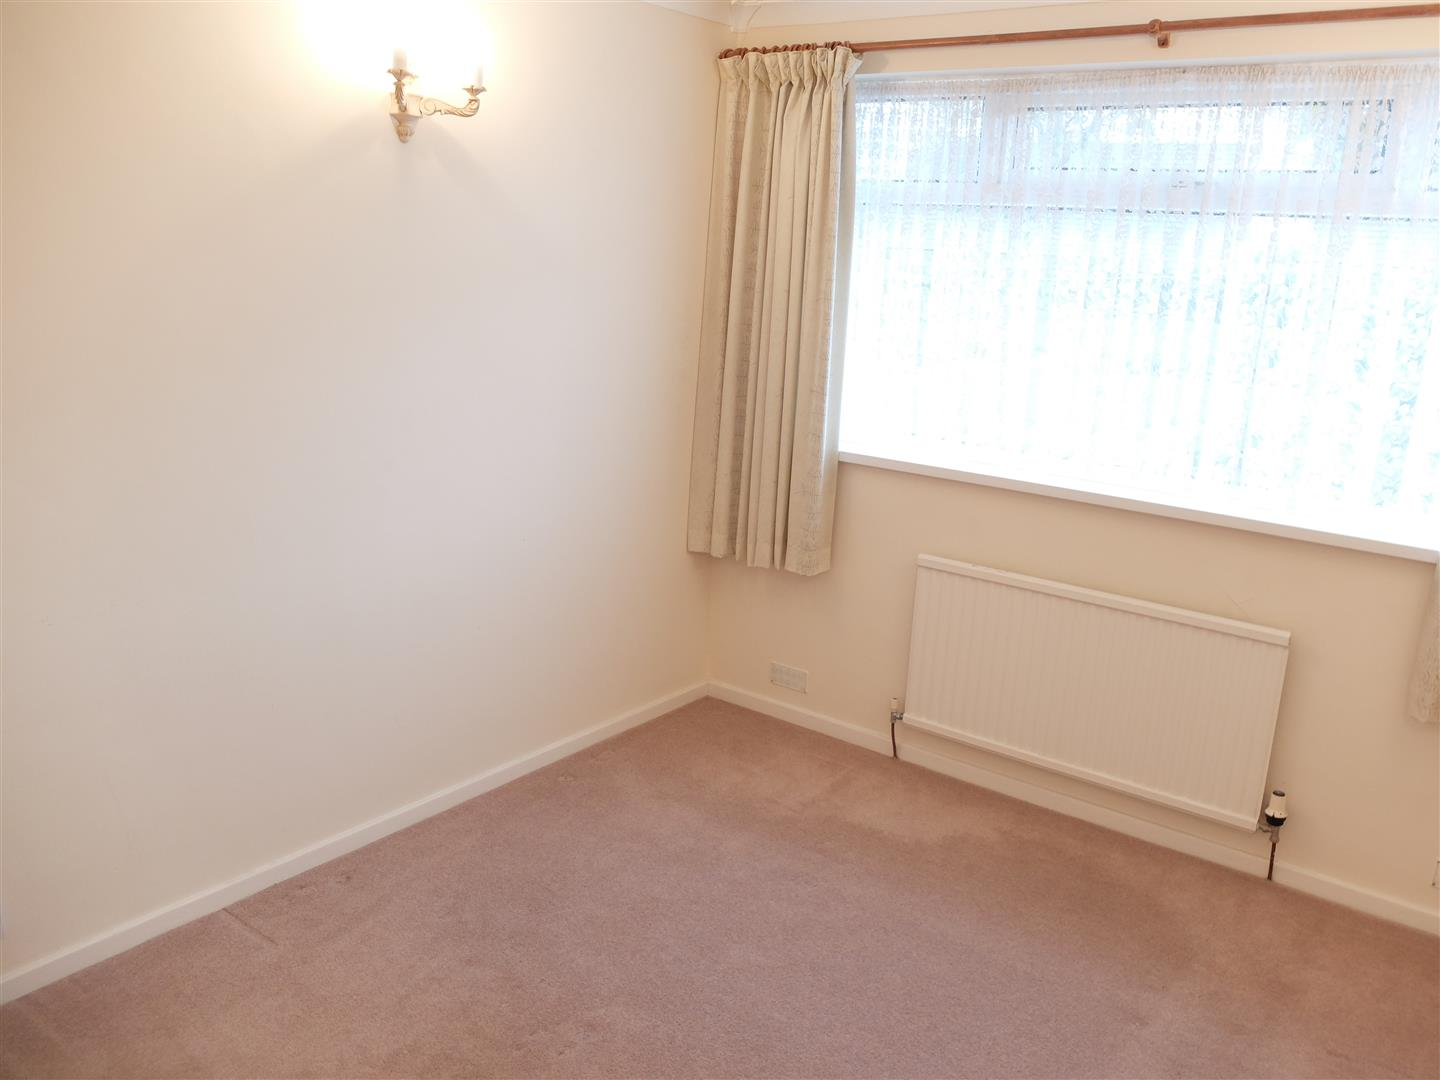 4 Farbrow Road Carlisle 2 Bedrooms Bungalow - Semi Detached For Sale 160,000